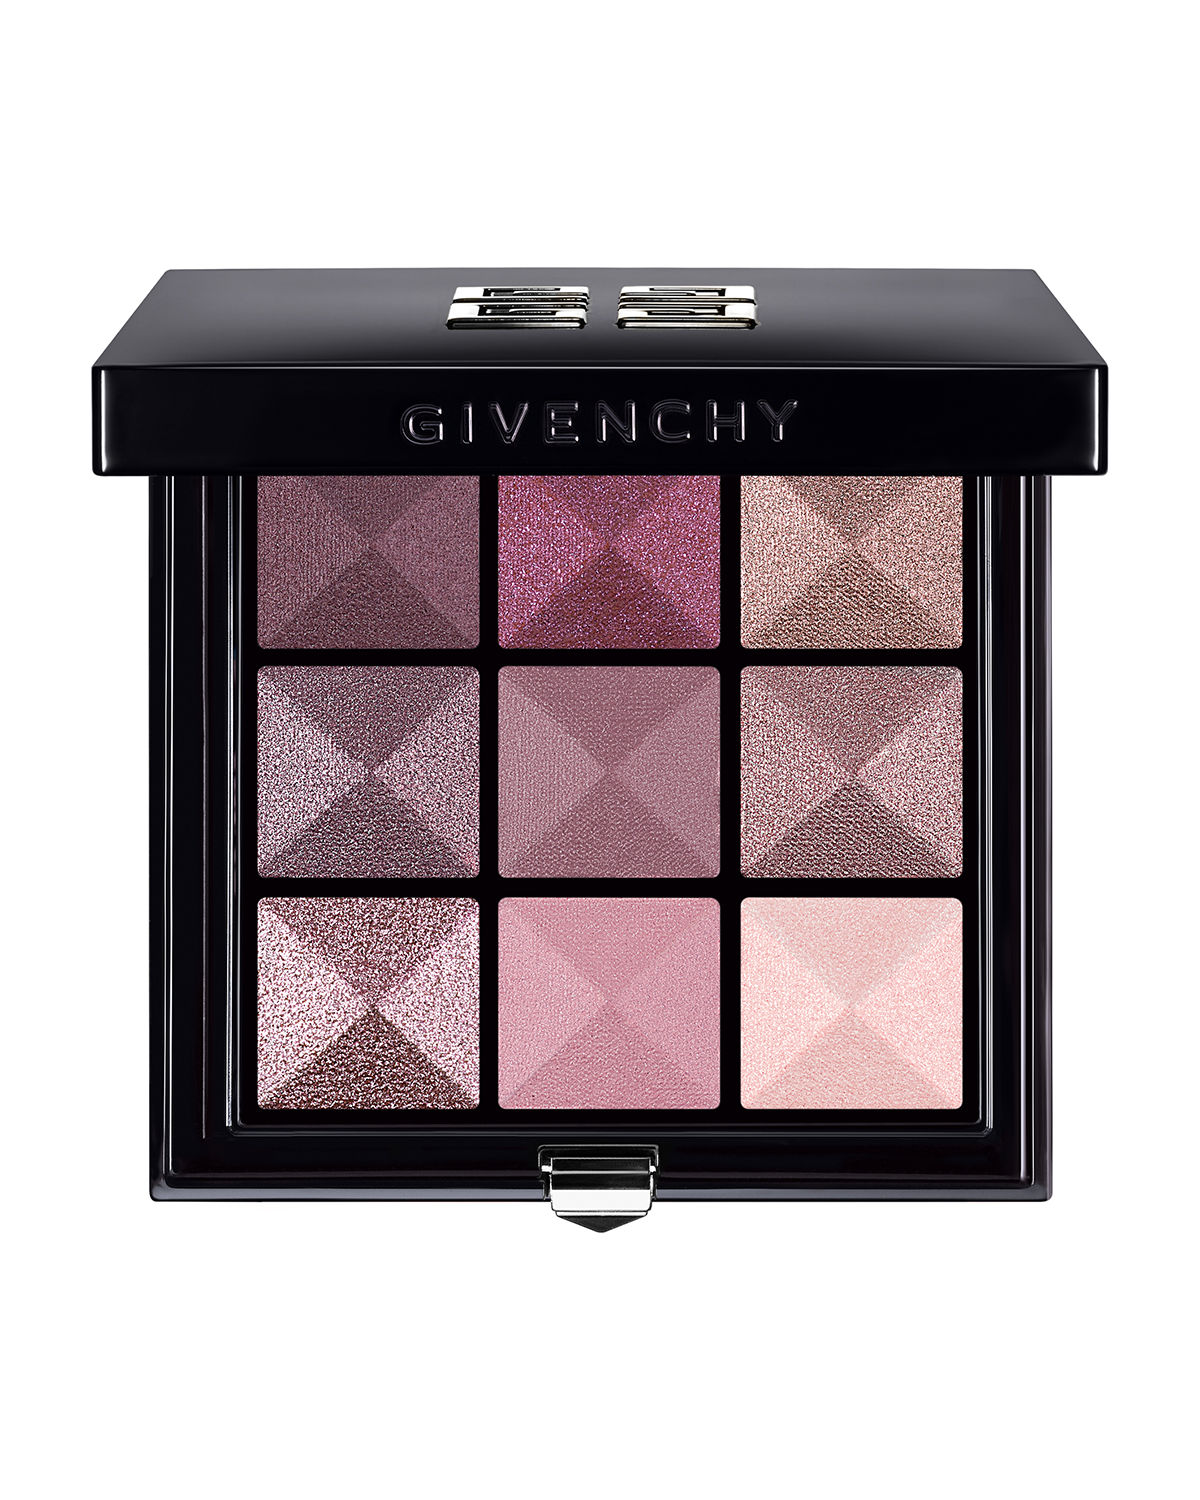 Essence Of Shadows Prismissime Eye Palette Limited Edition by Givenchy